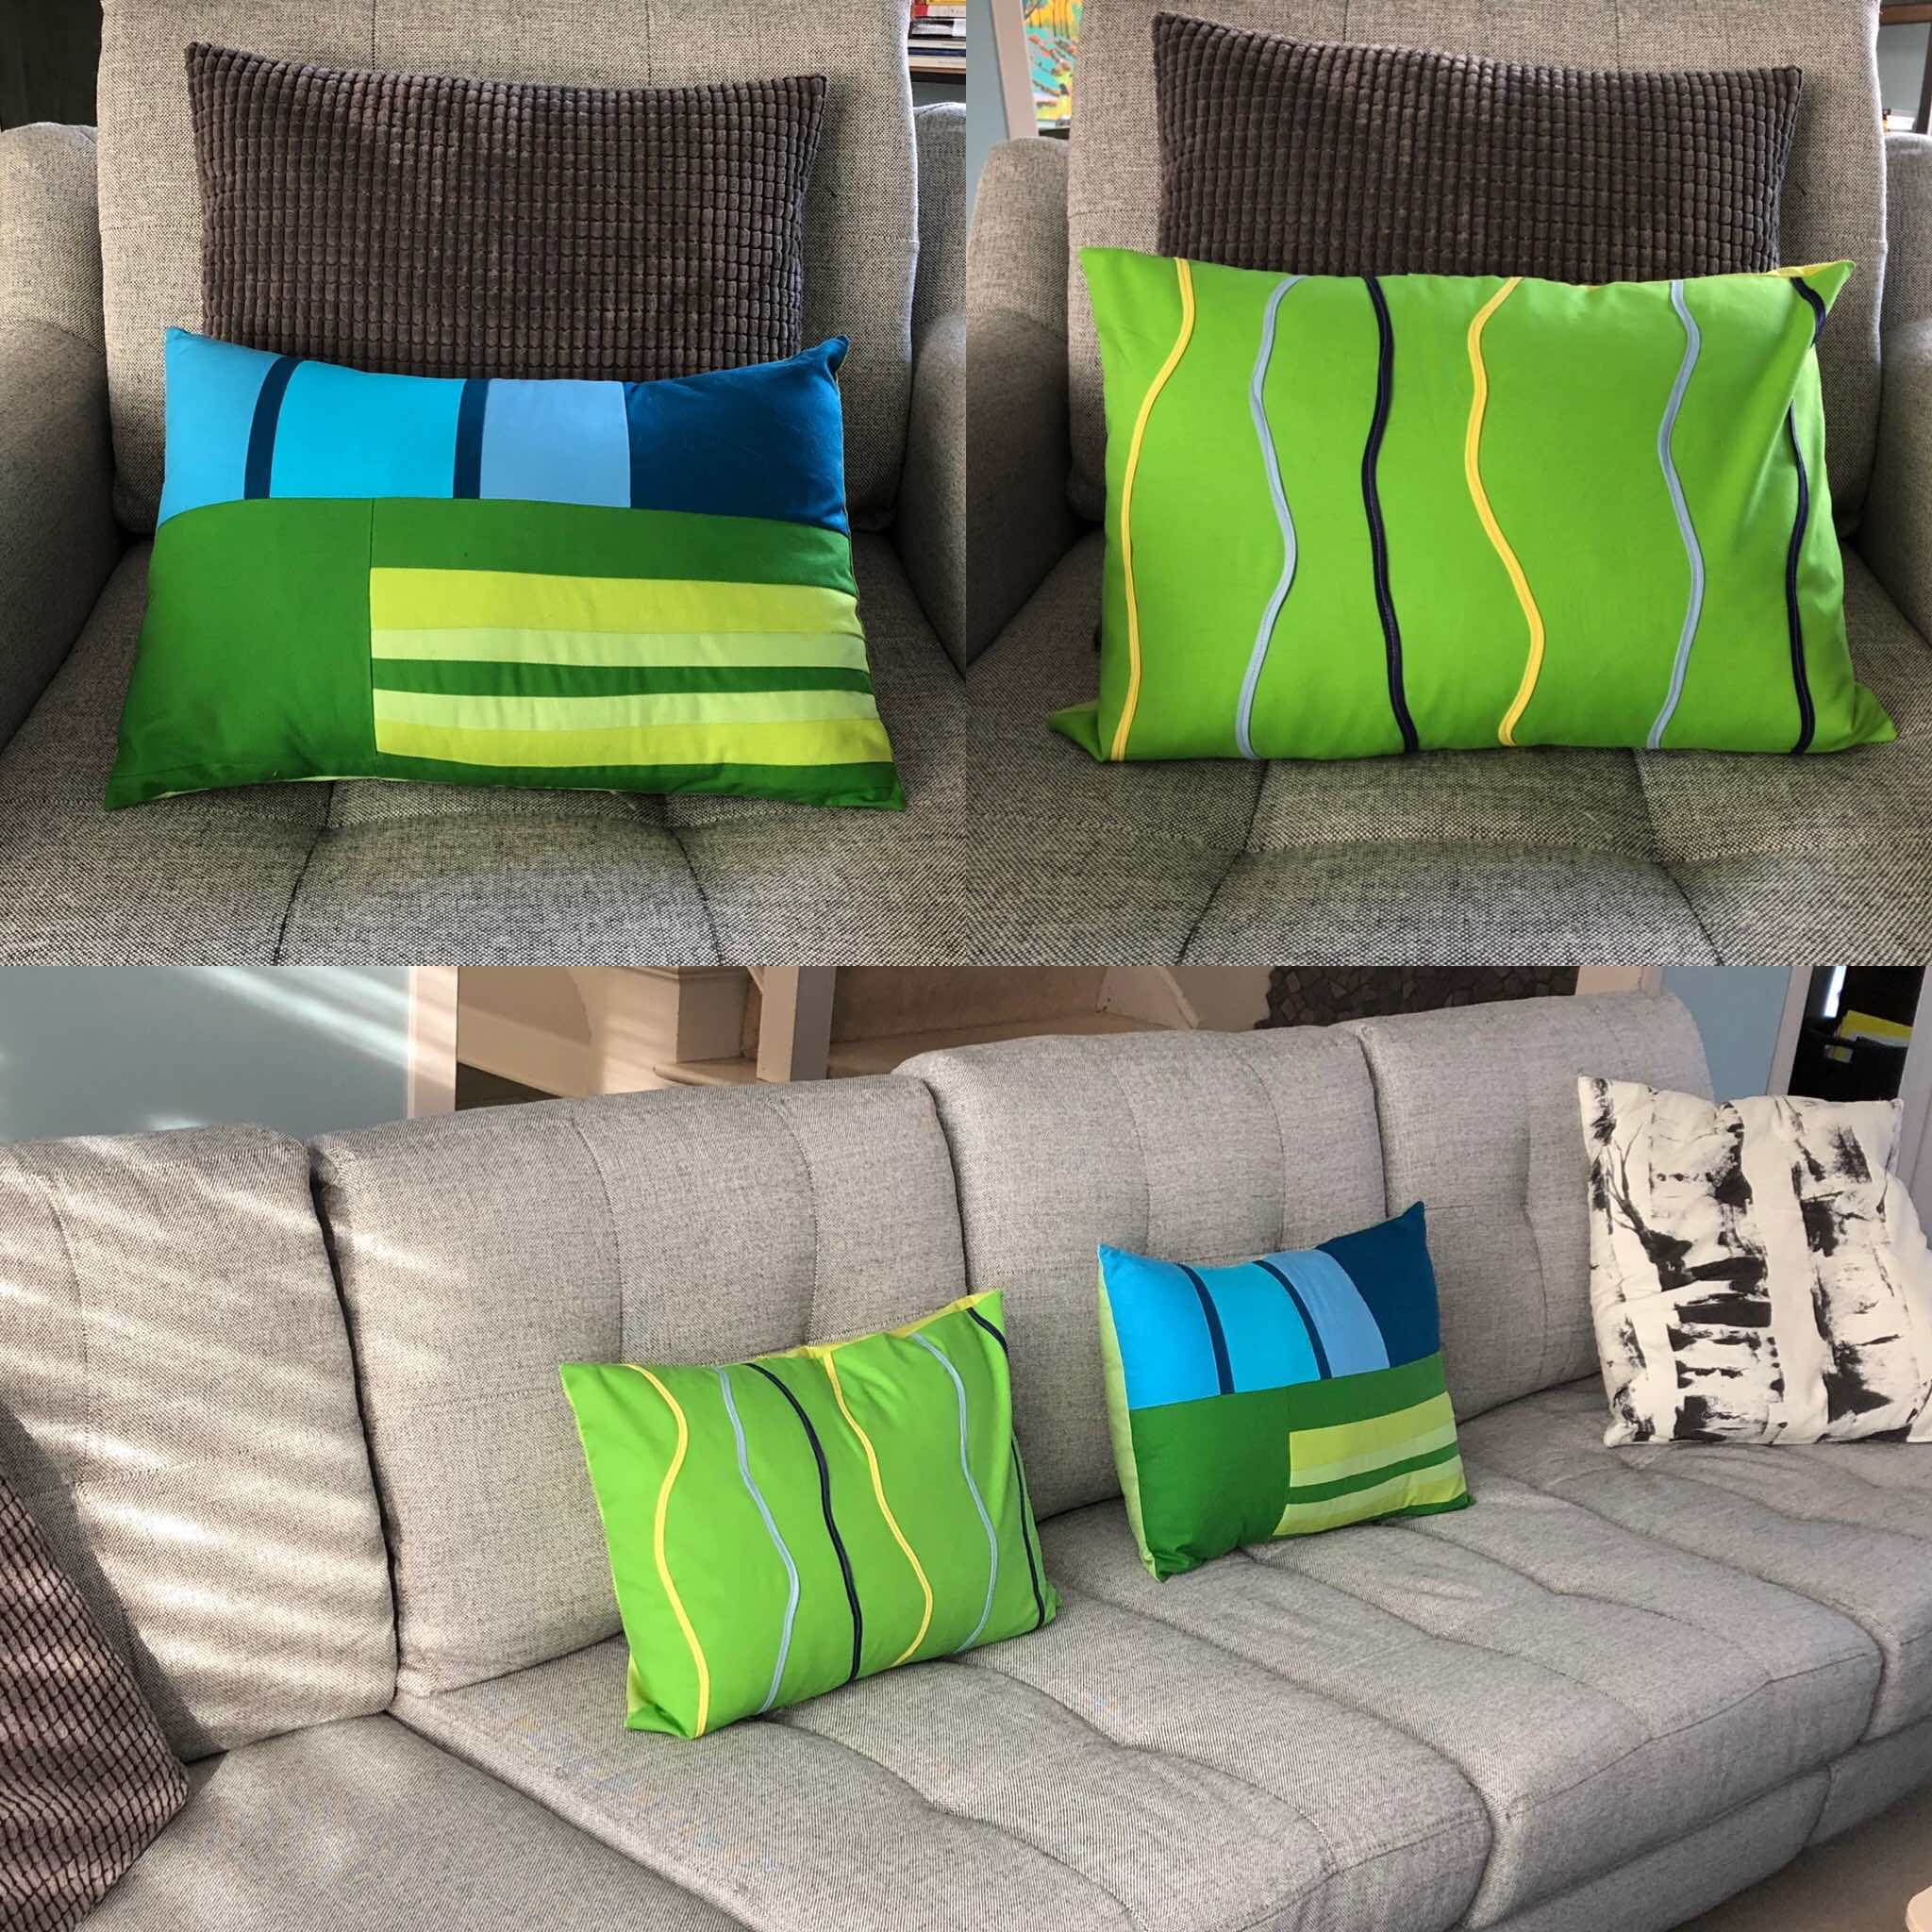 Close up of  Summer Prairie  and  Contours pillows  and shown in place in our new  Burrow couch  (Yes, I ordered it online and love it!)